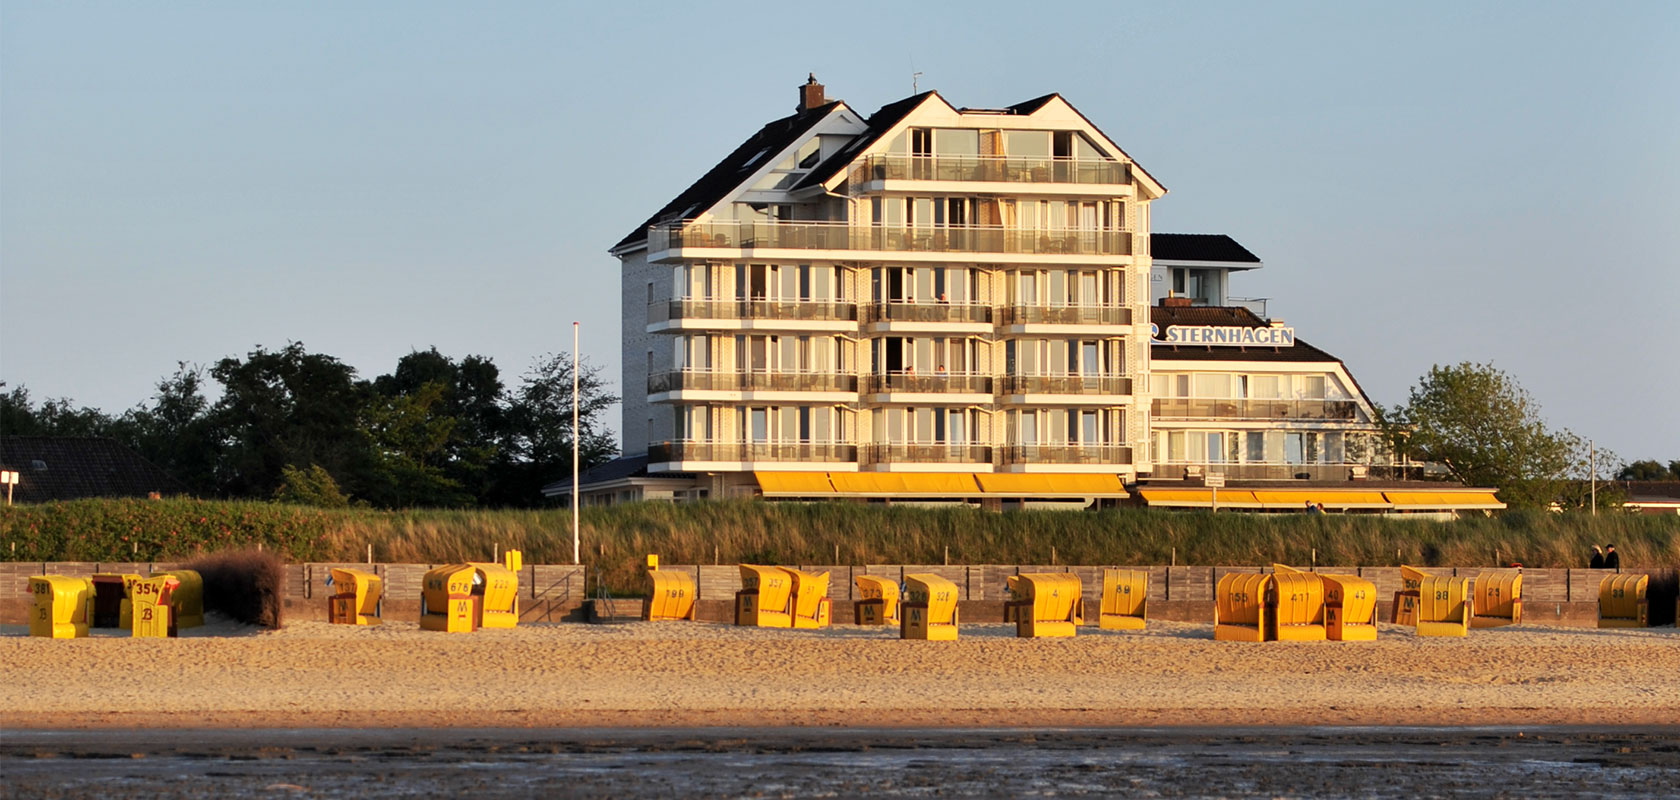 Wellnesshotel in Cuxhaven